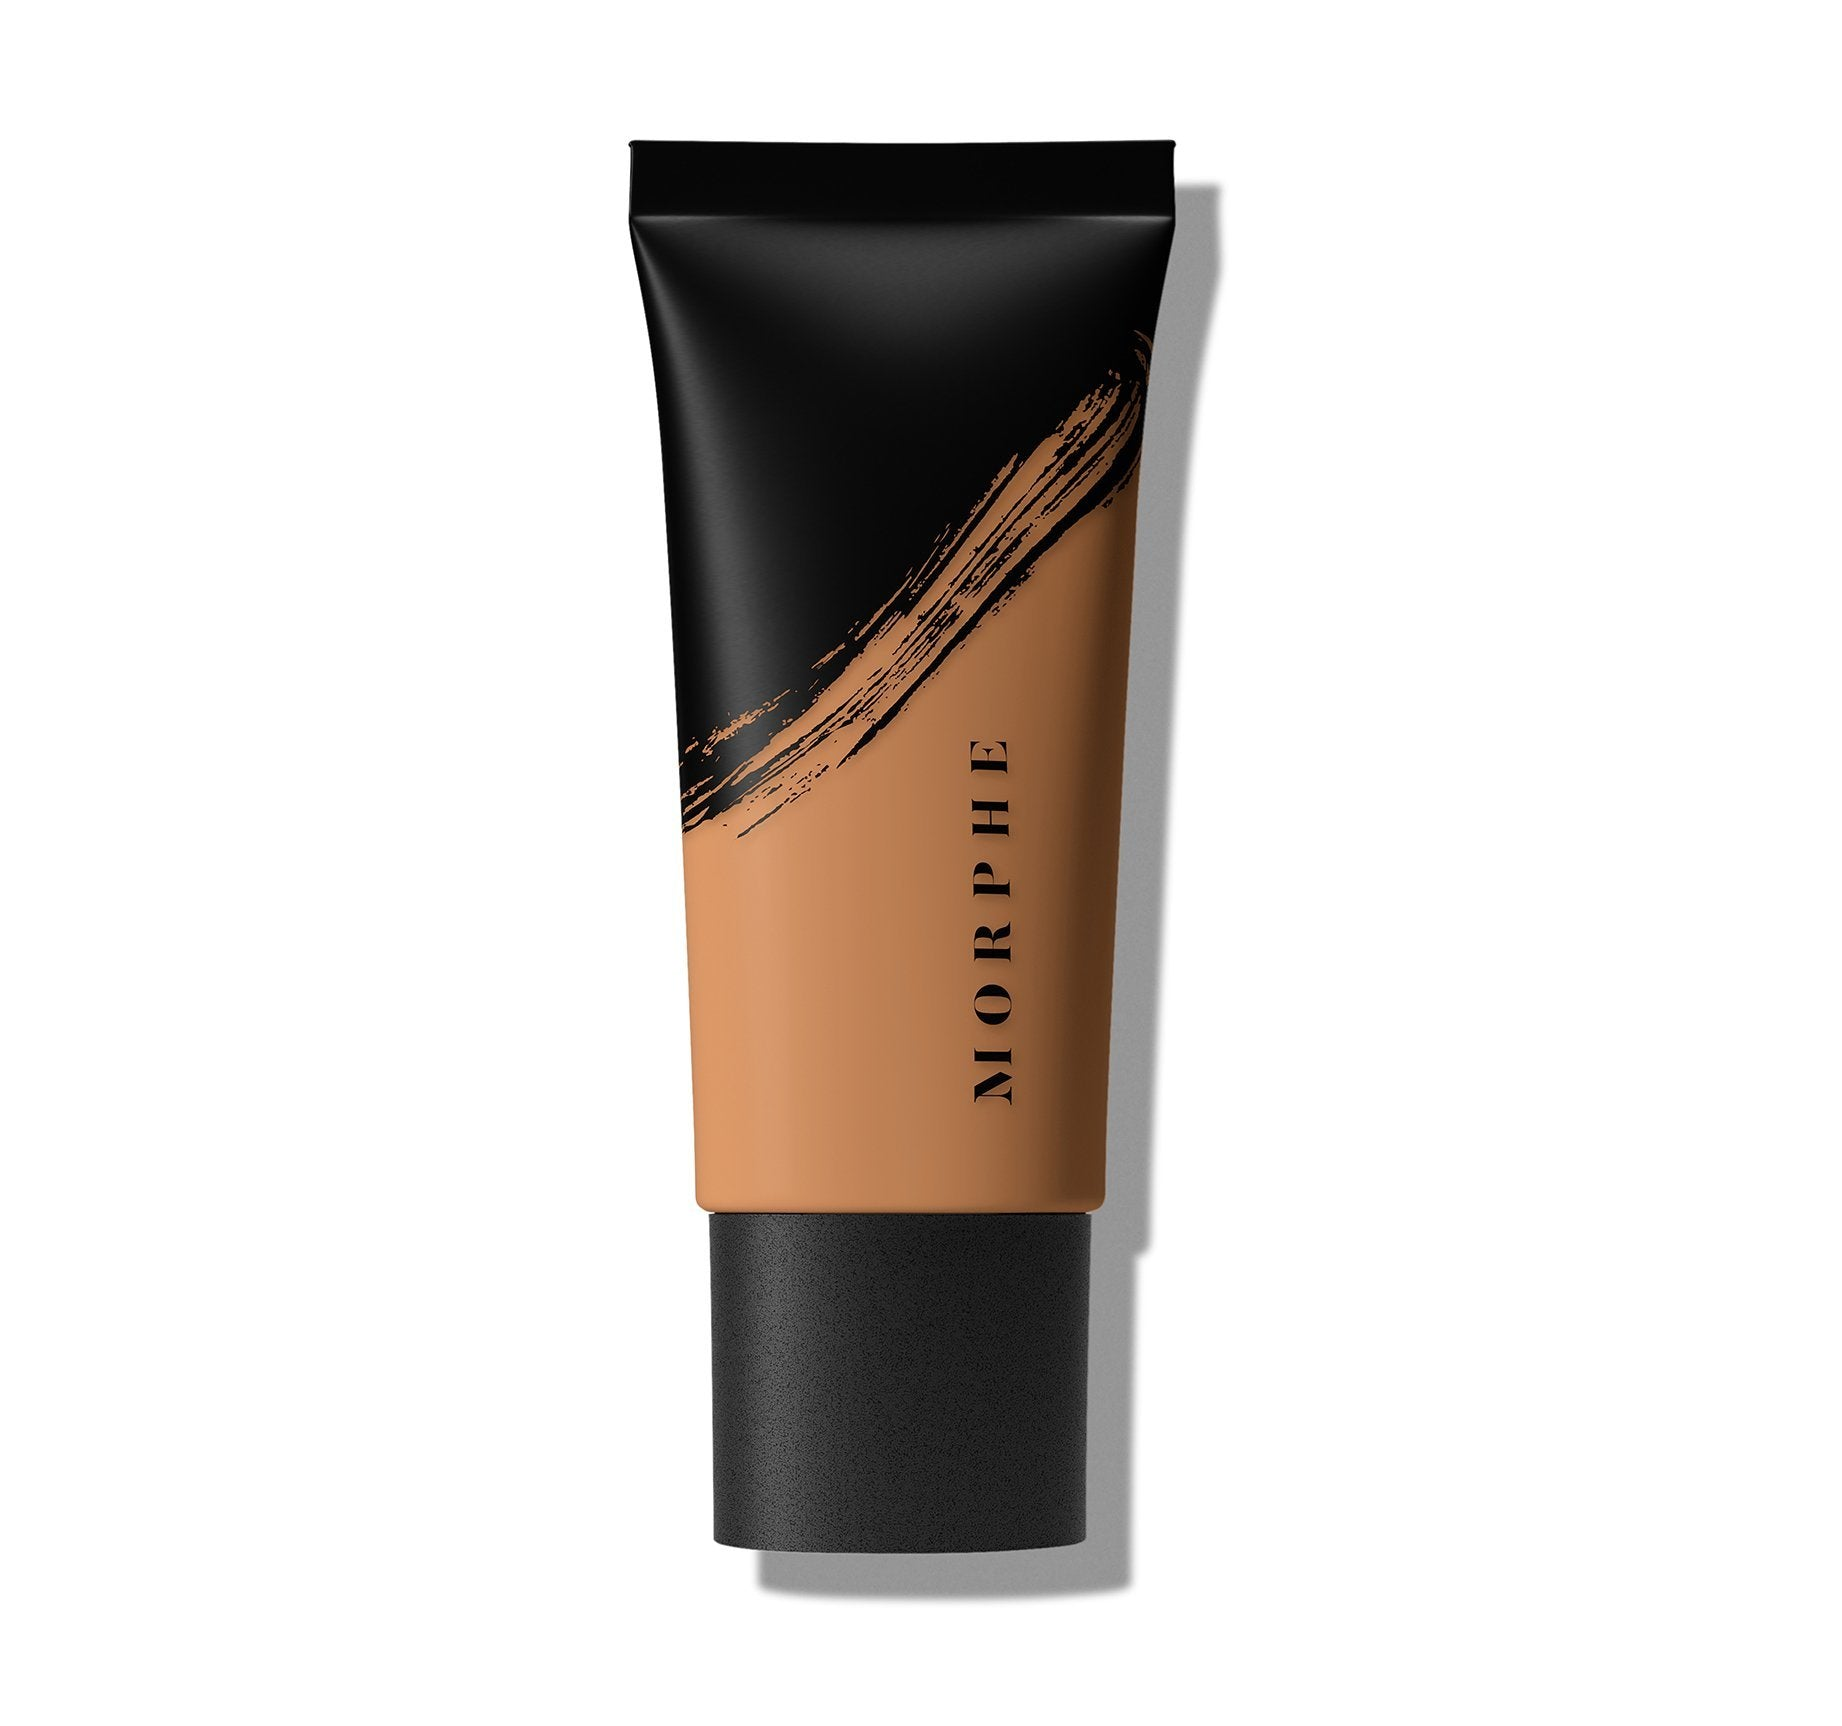 FLUIDITY FULL-COVERAGE FOUNDATION - F2.110, view larger image